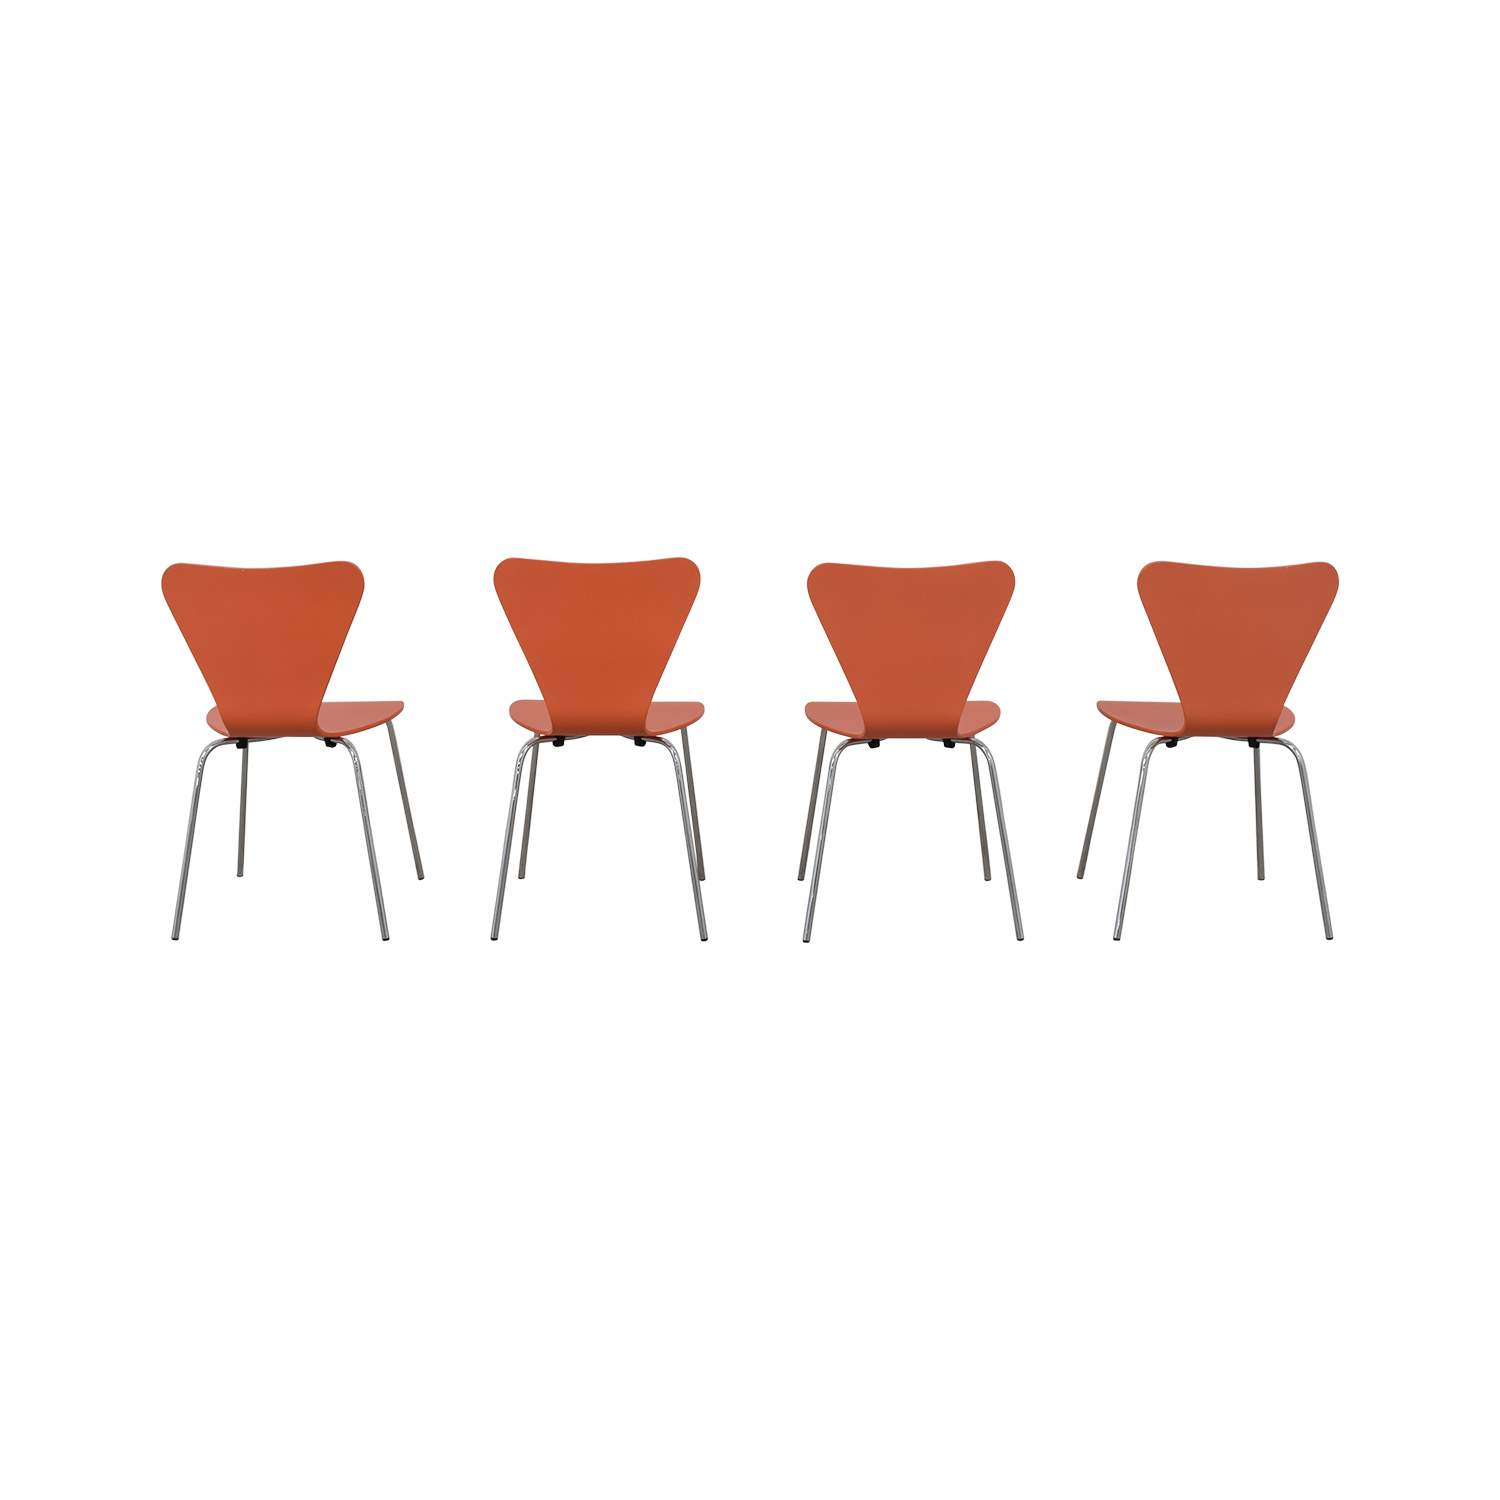 Room & Board Room & Board Orange Chairs second hand